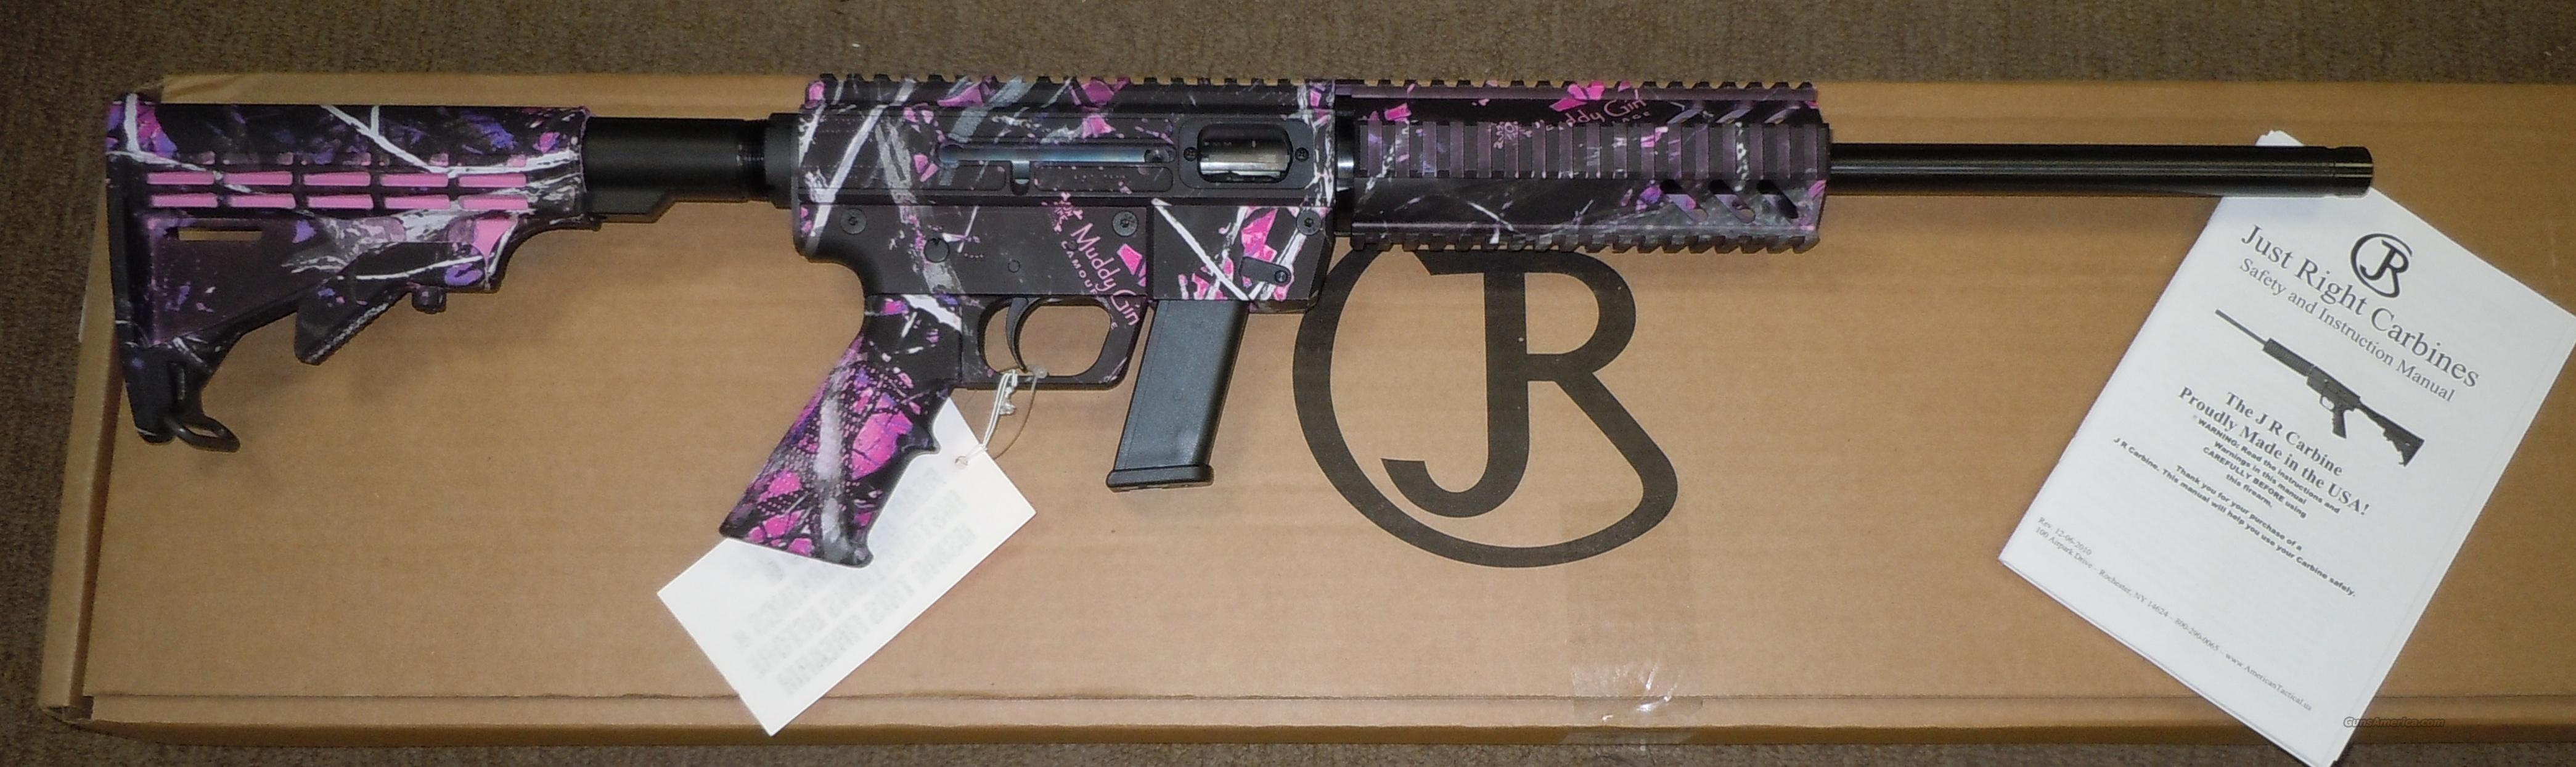 ATI JUST RIGHT CARBINES MUDDY GIRL CAMO 9MM AR STYLE CARBINE *USES GLOCK MAGS*  Guns > Rifles > AR-15 Rifles - Small Manufacturers > Complete Rifle